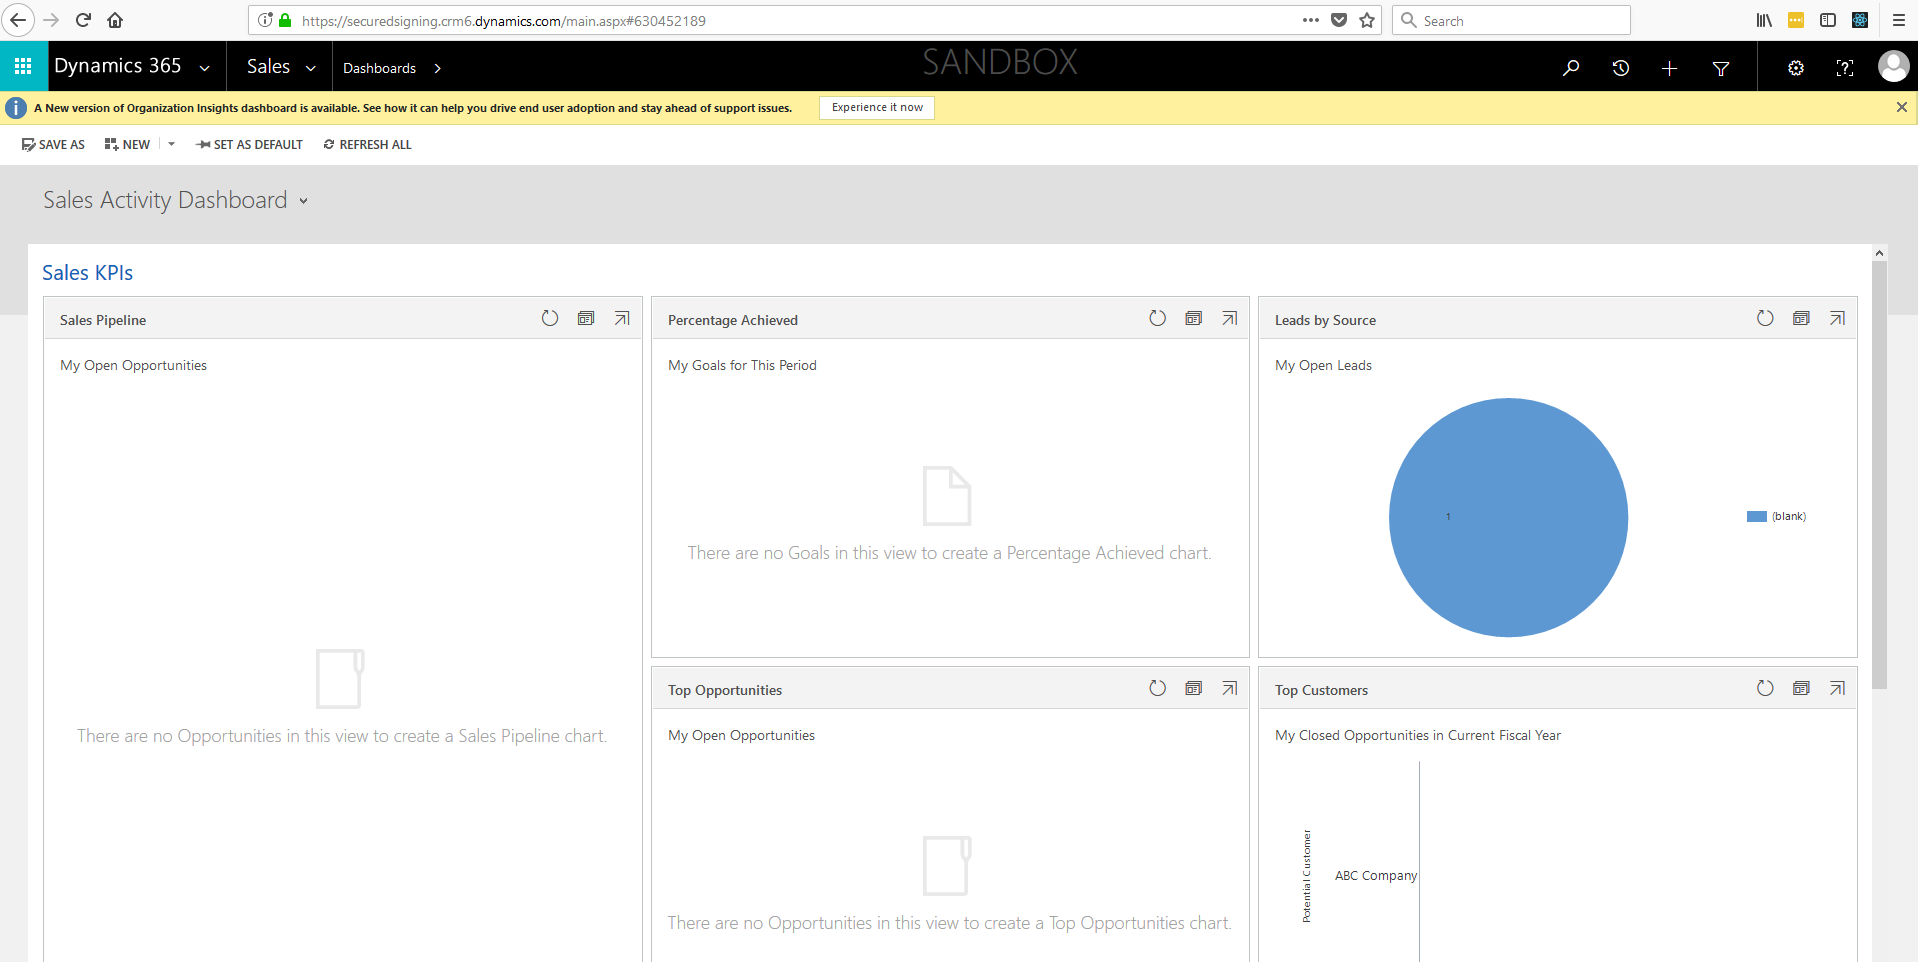 Secured Signing - Open your CRM365 instance in the web browser